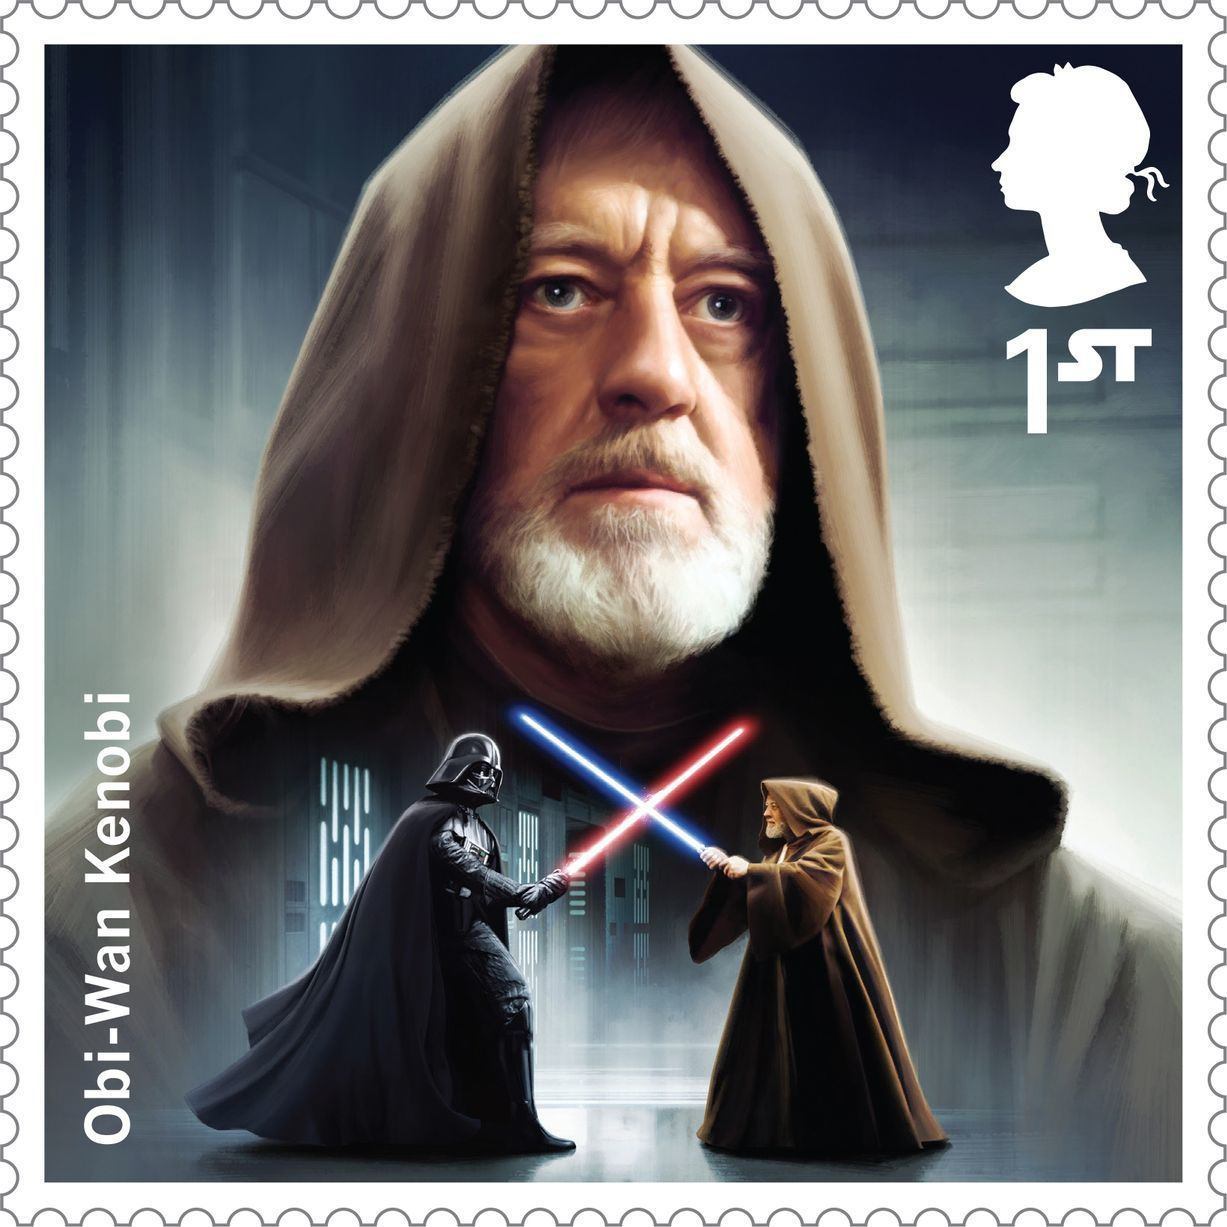 Star Wars Royal Mail